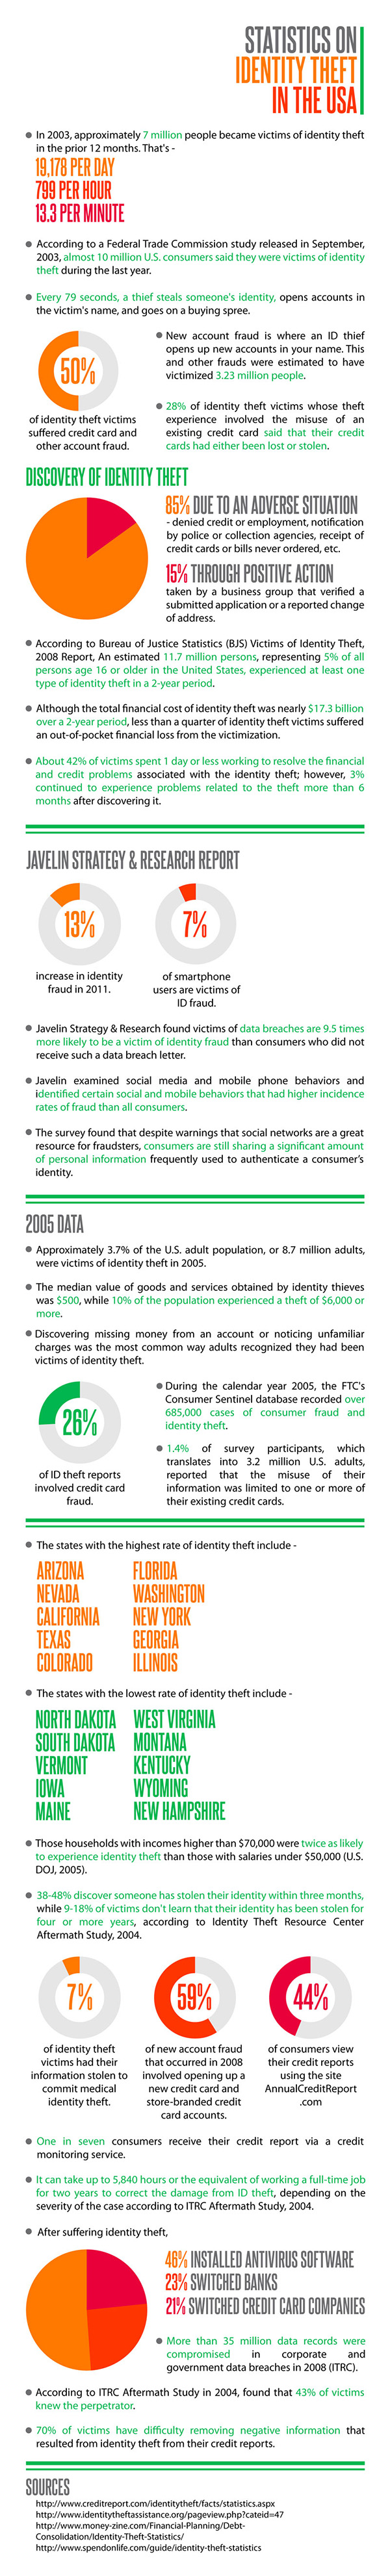 statistics about identity theft